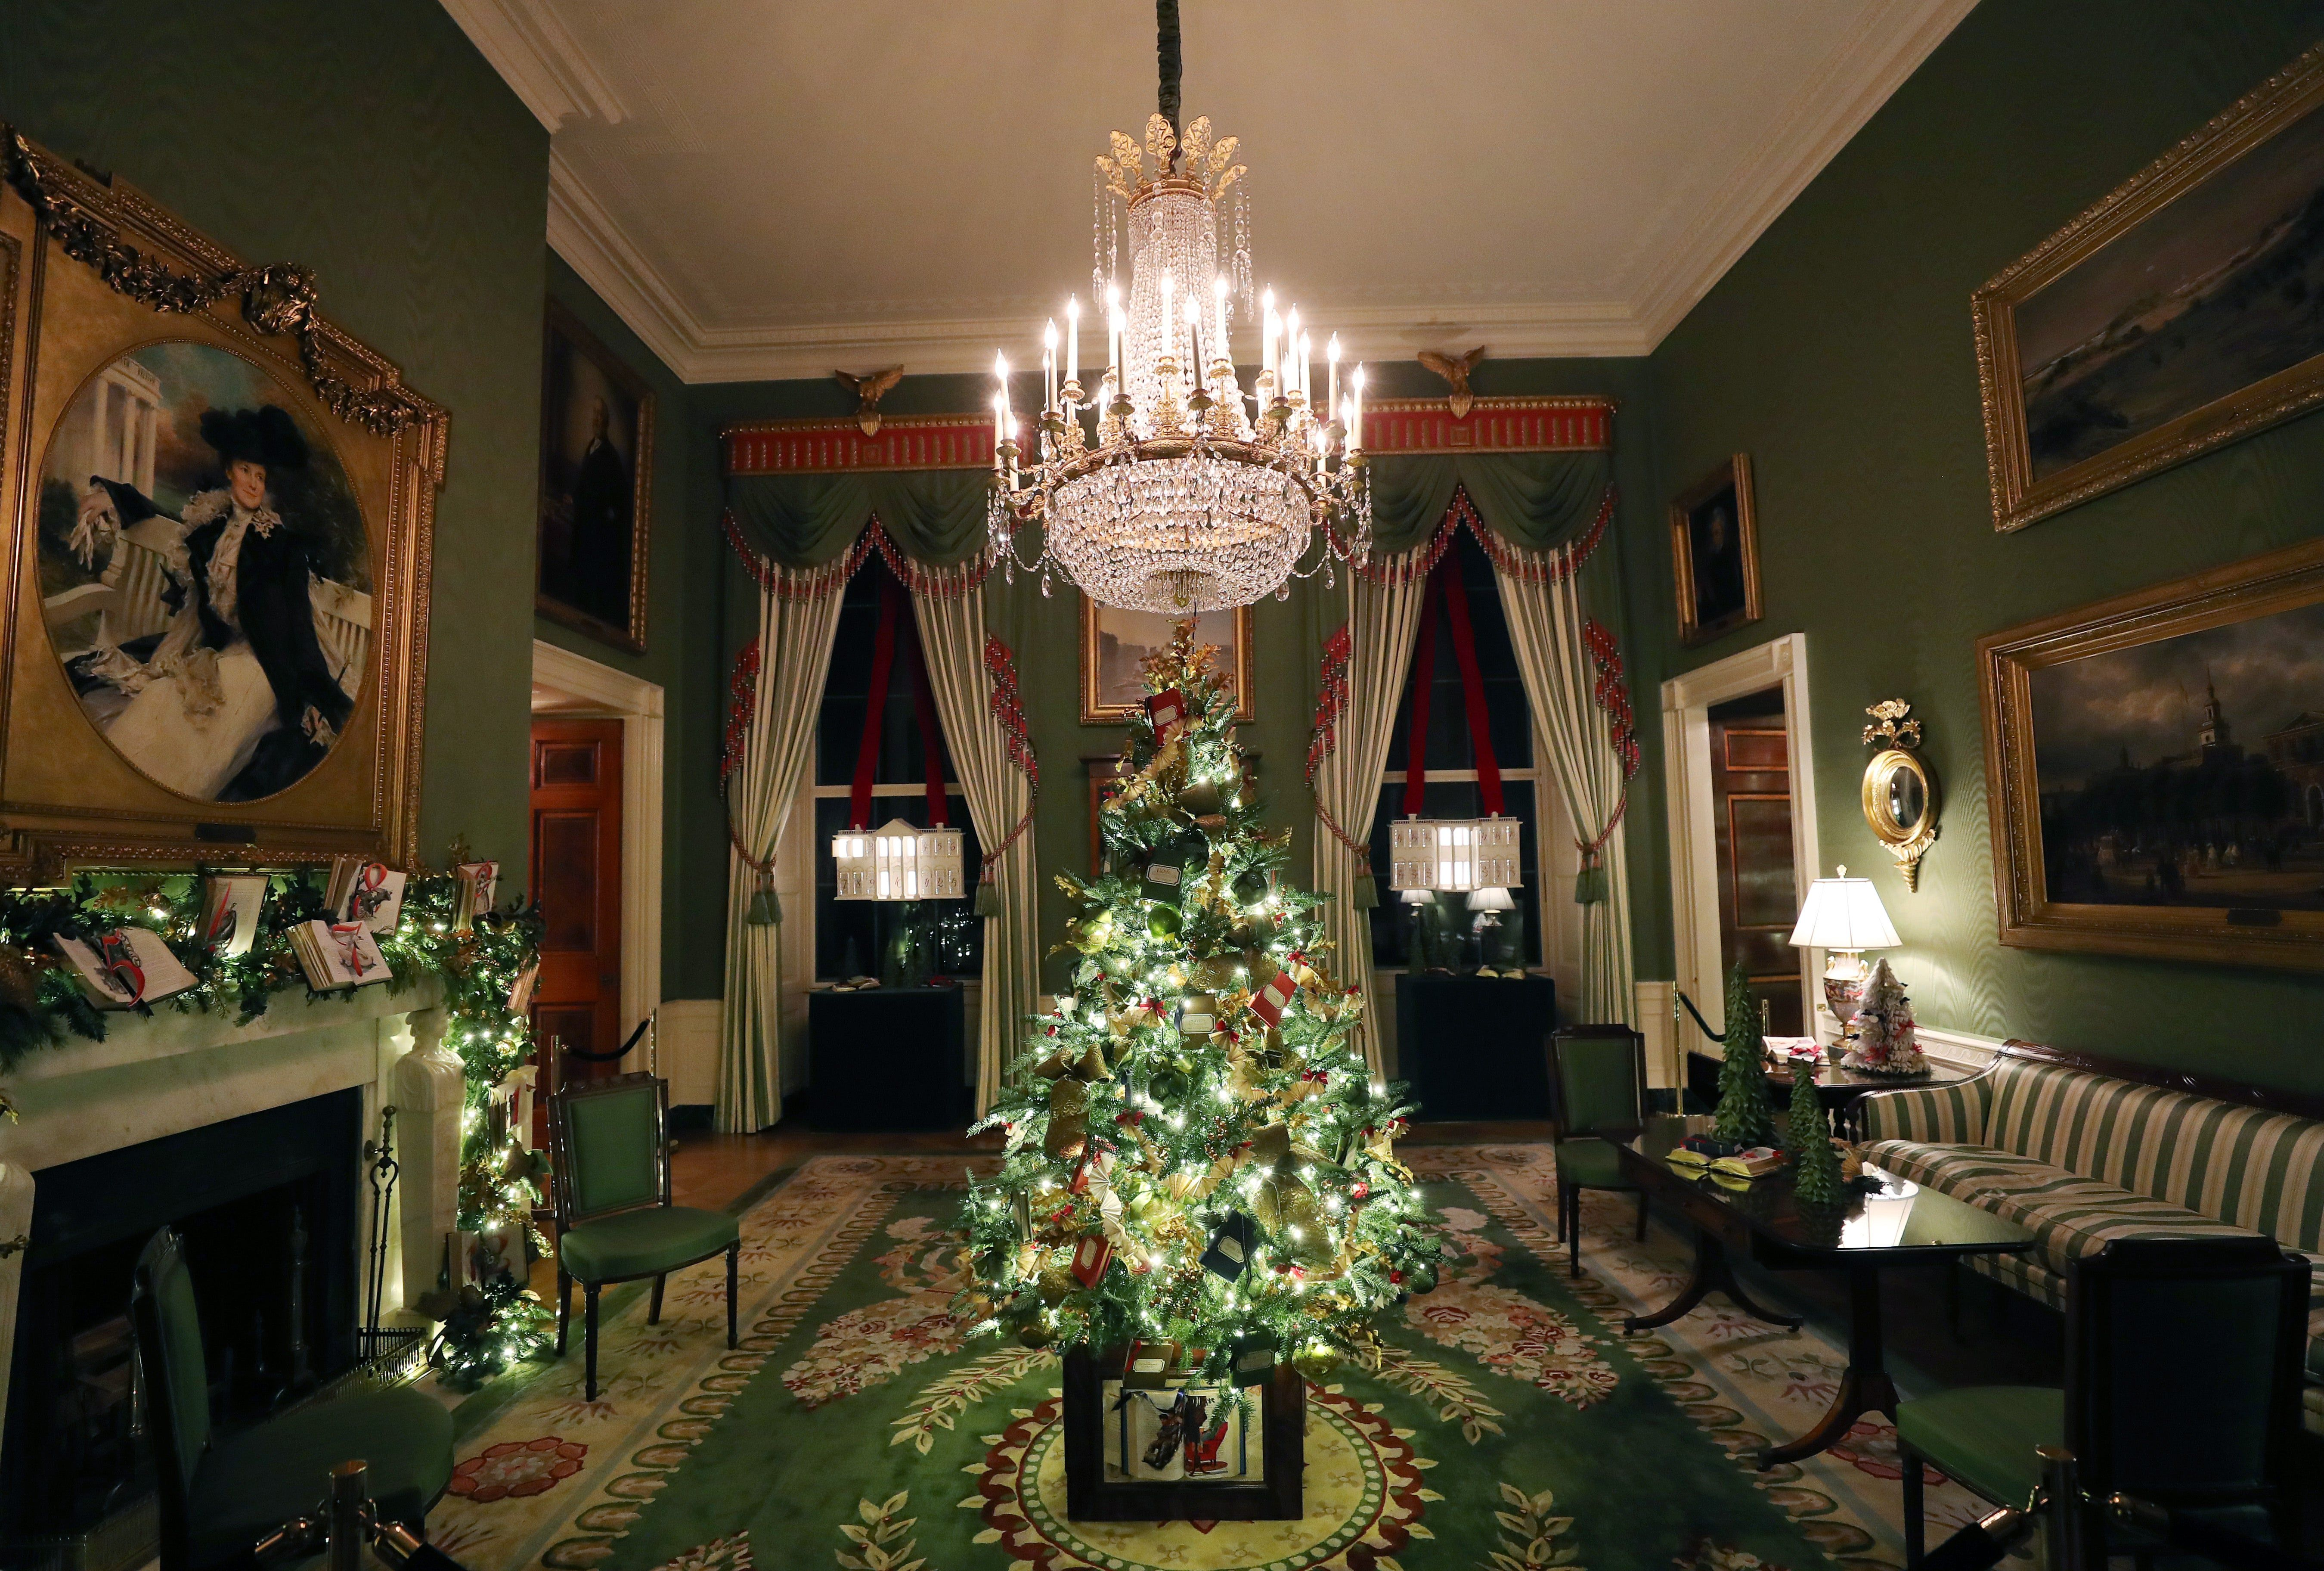 The White House S 2019 Christmas Decorations In Pictures White House Christmas Decorations White House Christmas Tree White House Christmas